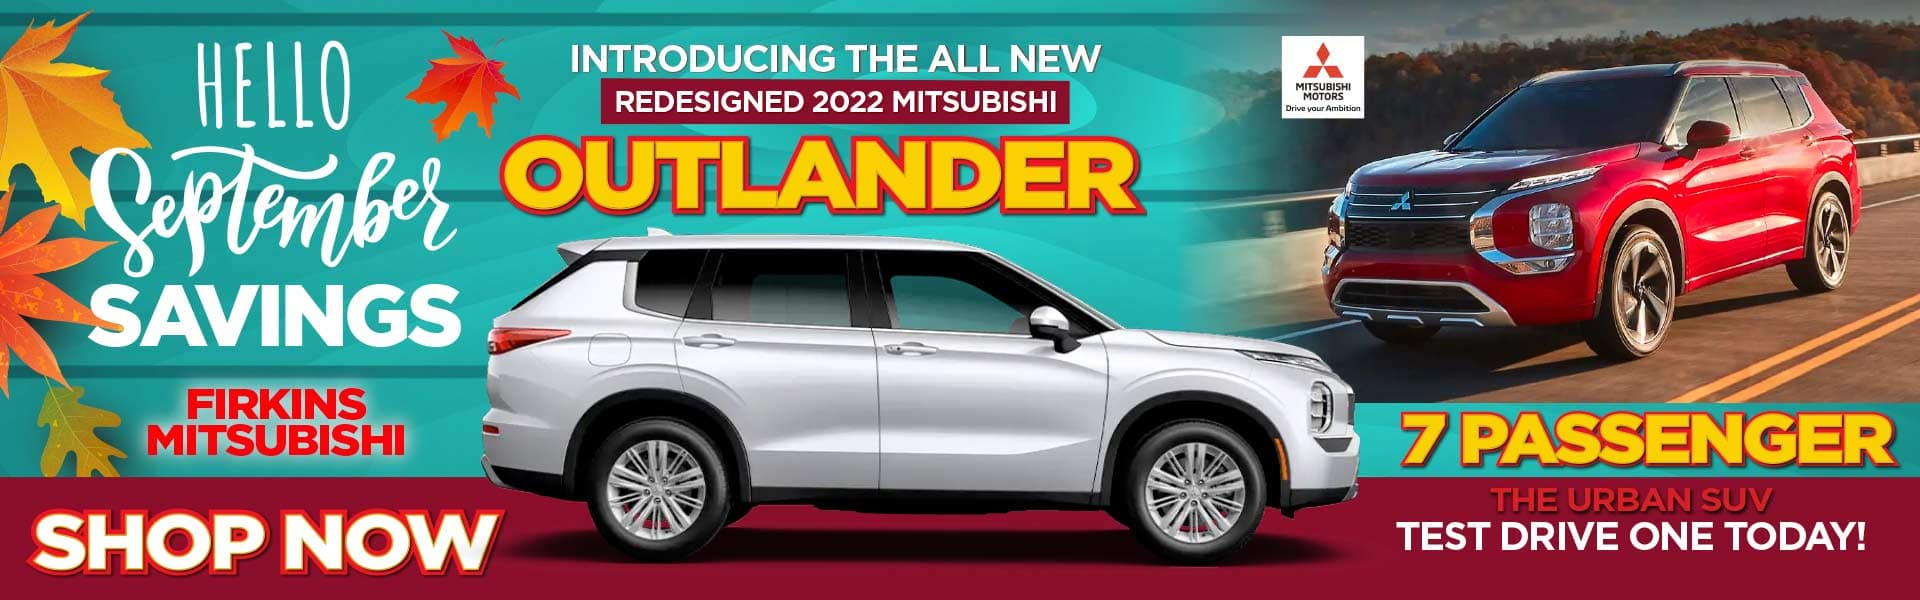 INTRODUCING the New Redesigned 2022 Mitsubishi Outlander - Test Drive One Today!